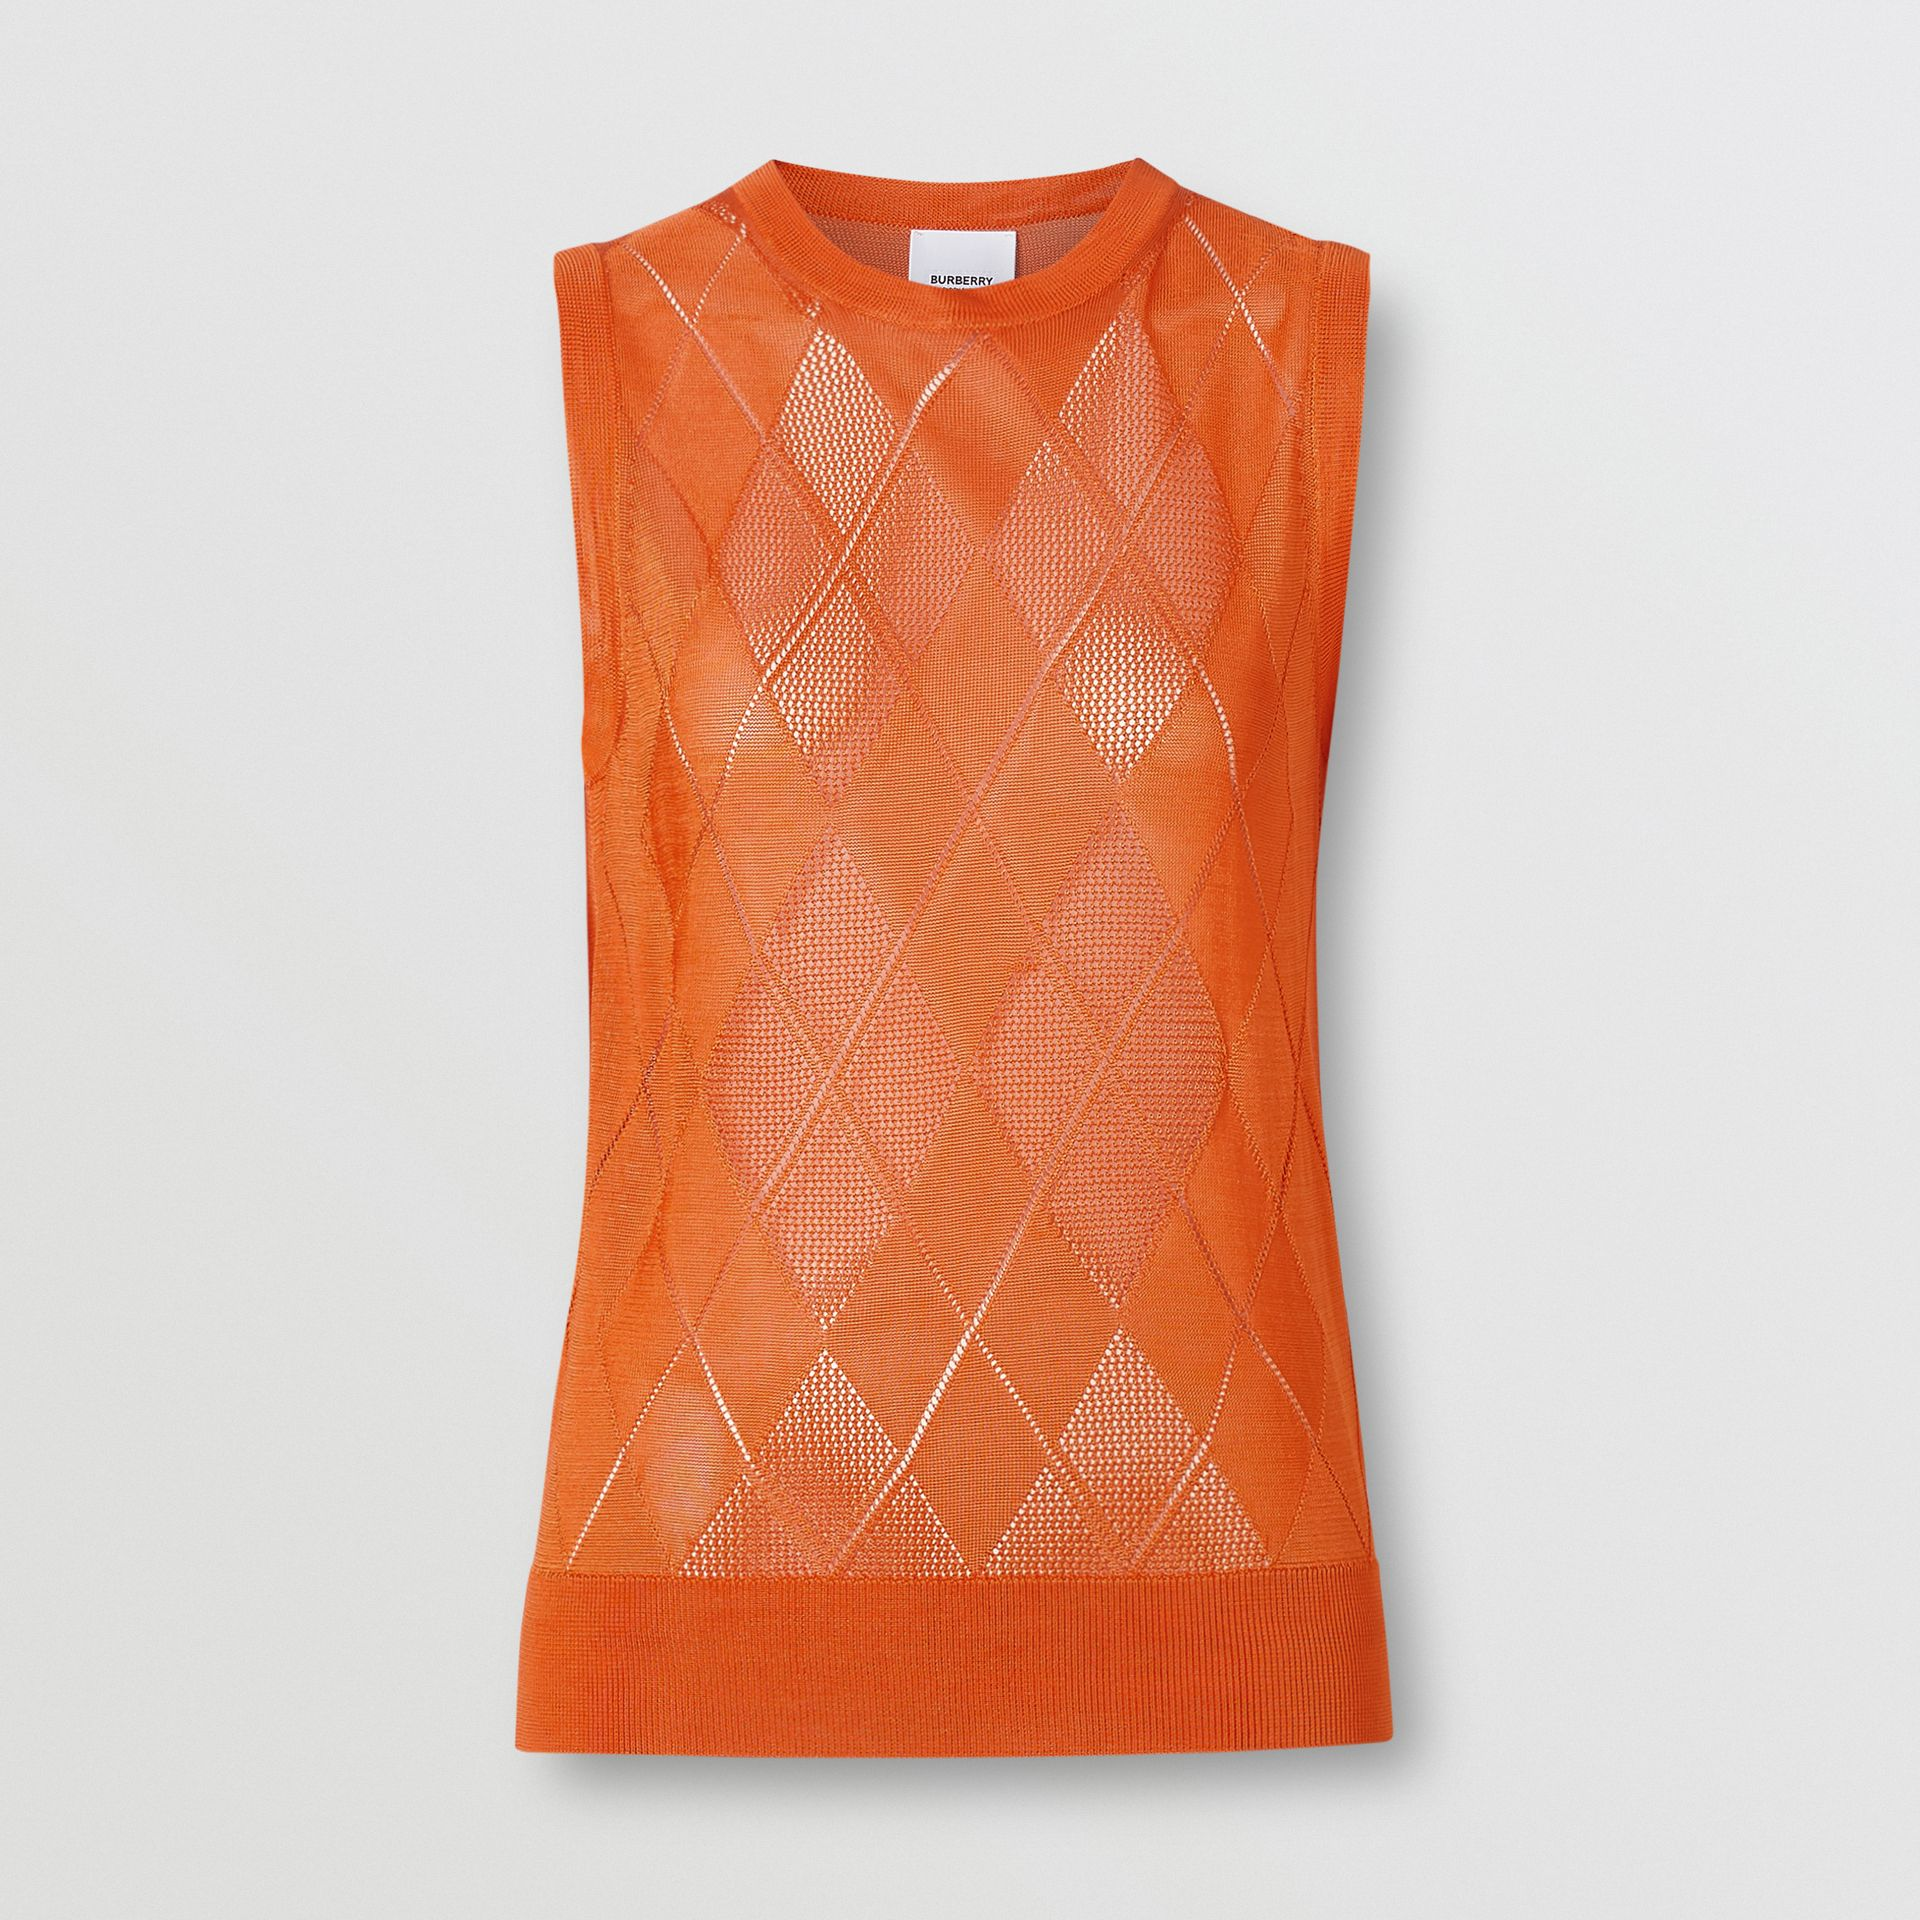 Monogram Motif Pointelle Knit Vest in Orange - Women | Burberry - gallery image 3